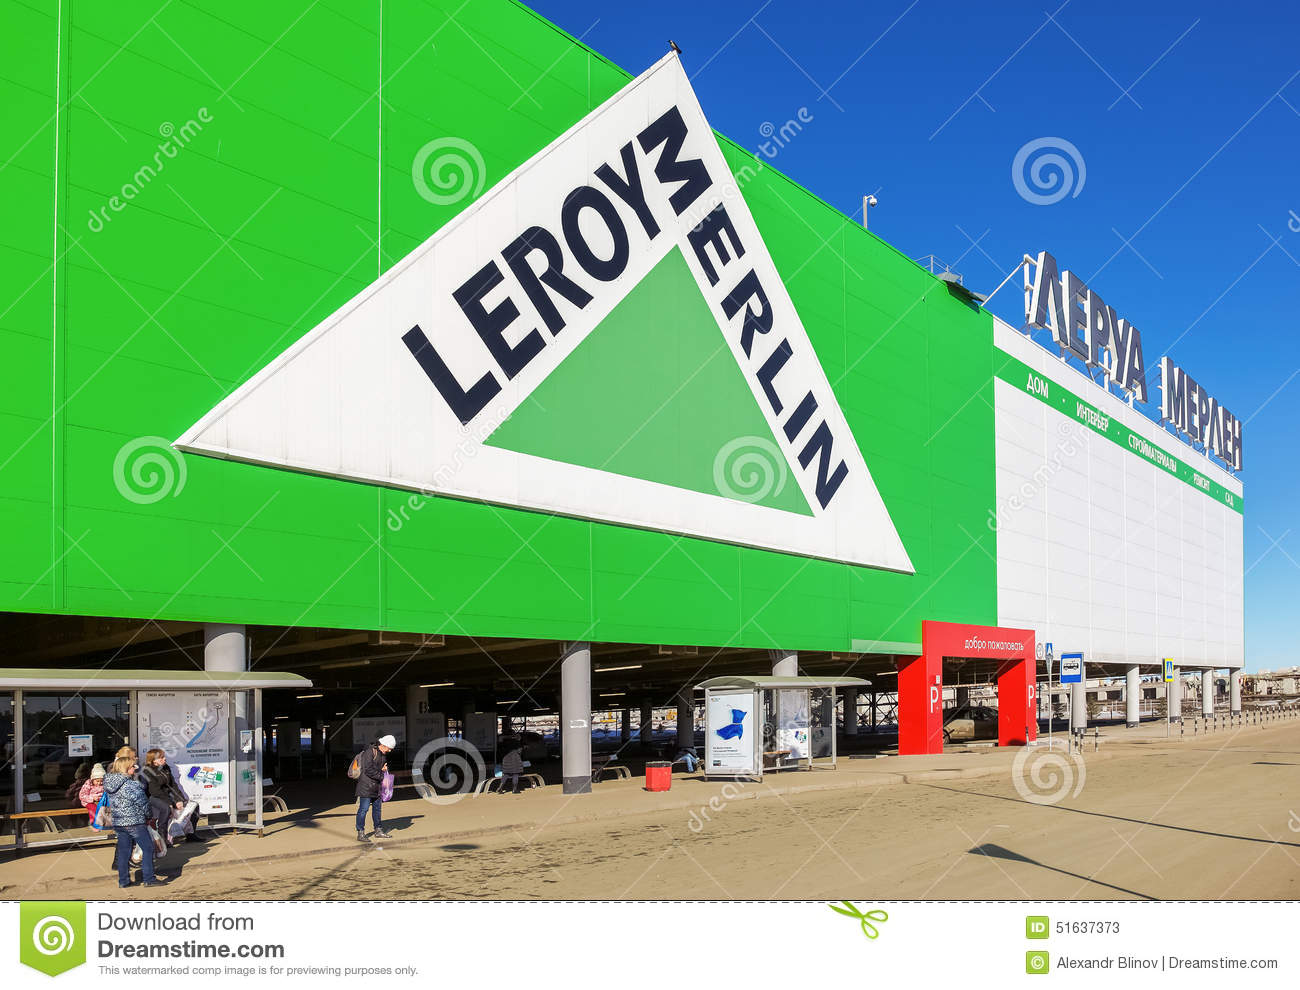 Leroy merlin samara store editorial stock photo image - Peinture industrie leroy merlin ...